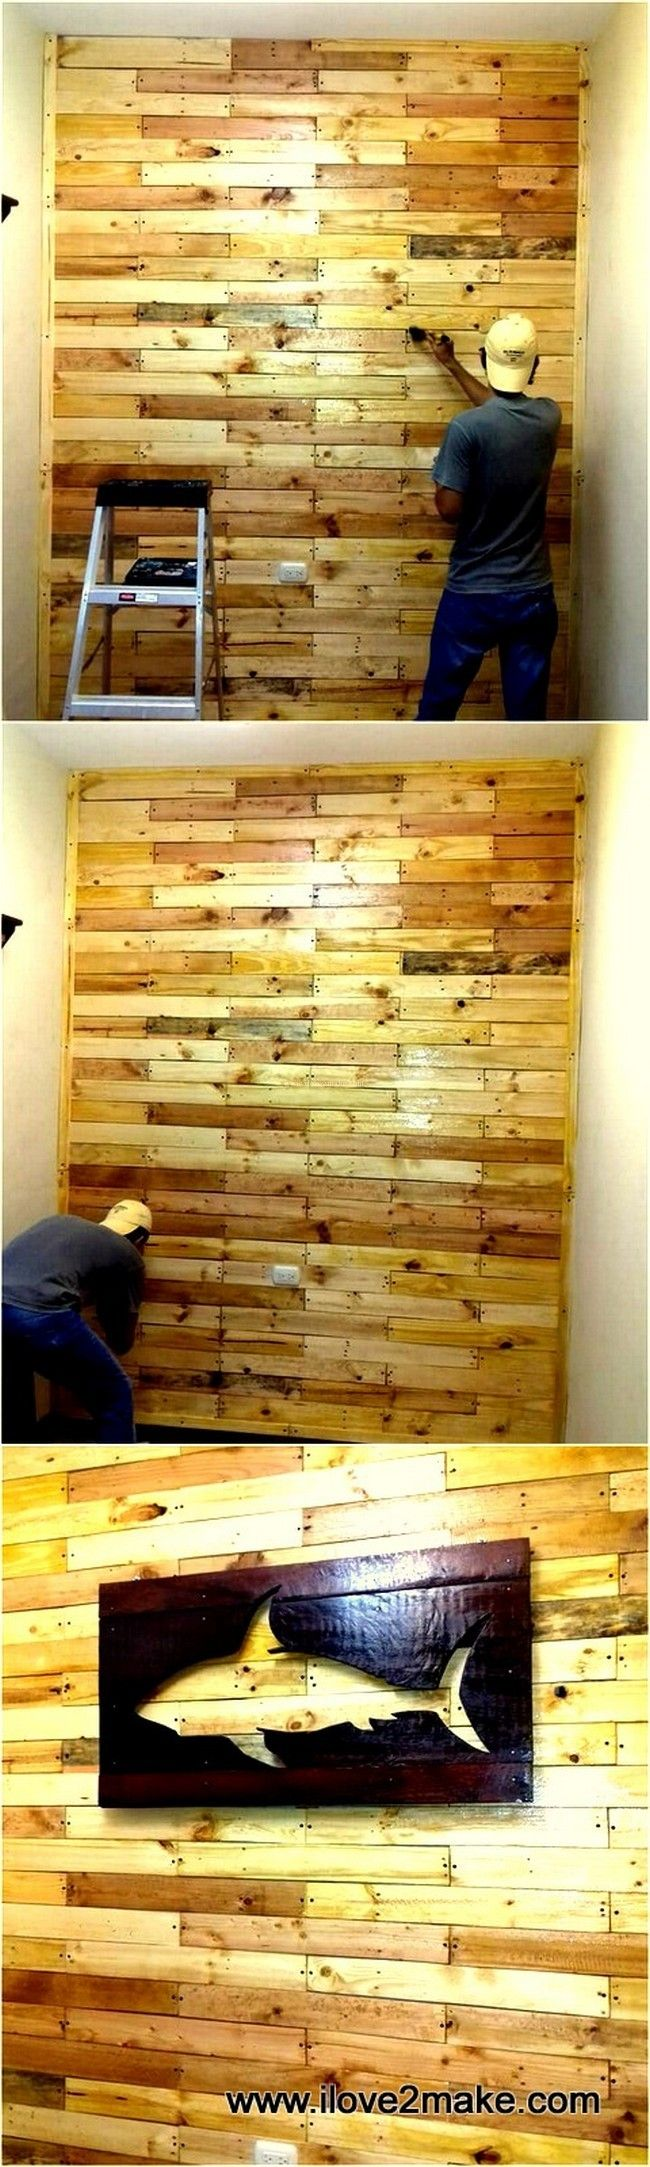 12 best Dog House images on Pinterest | Dog houses, Pallets and ...